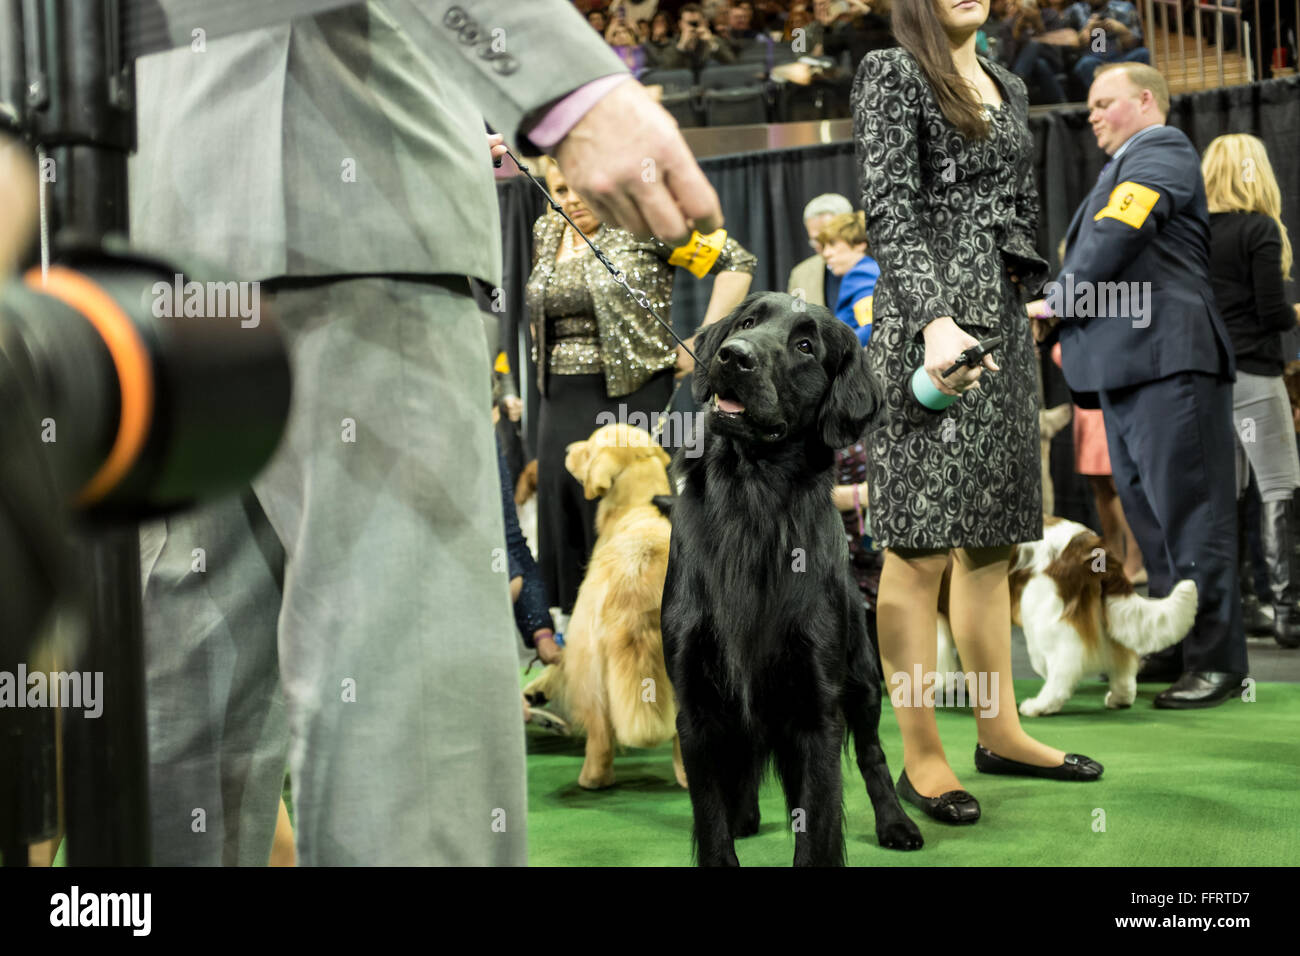 New York, USA. 16th February, 2016. A dog stares at a photographer's lens prior to entering the ring  at the 140th Stock Photo